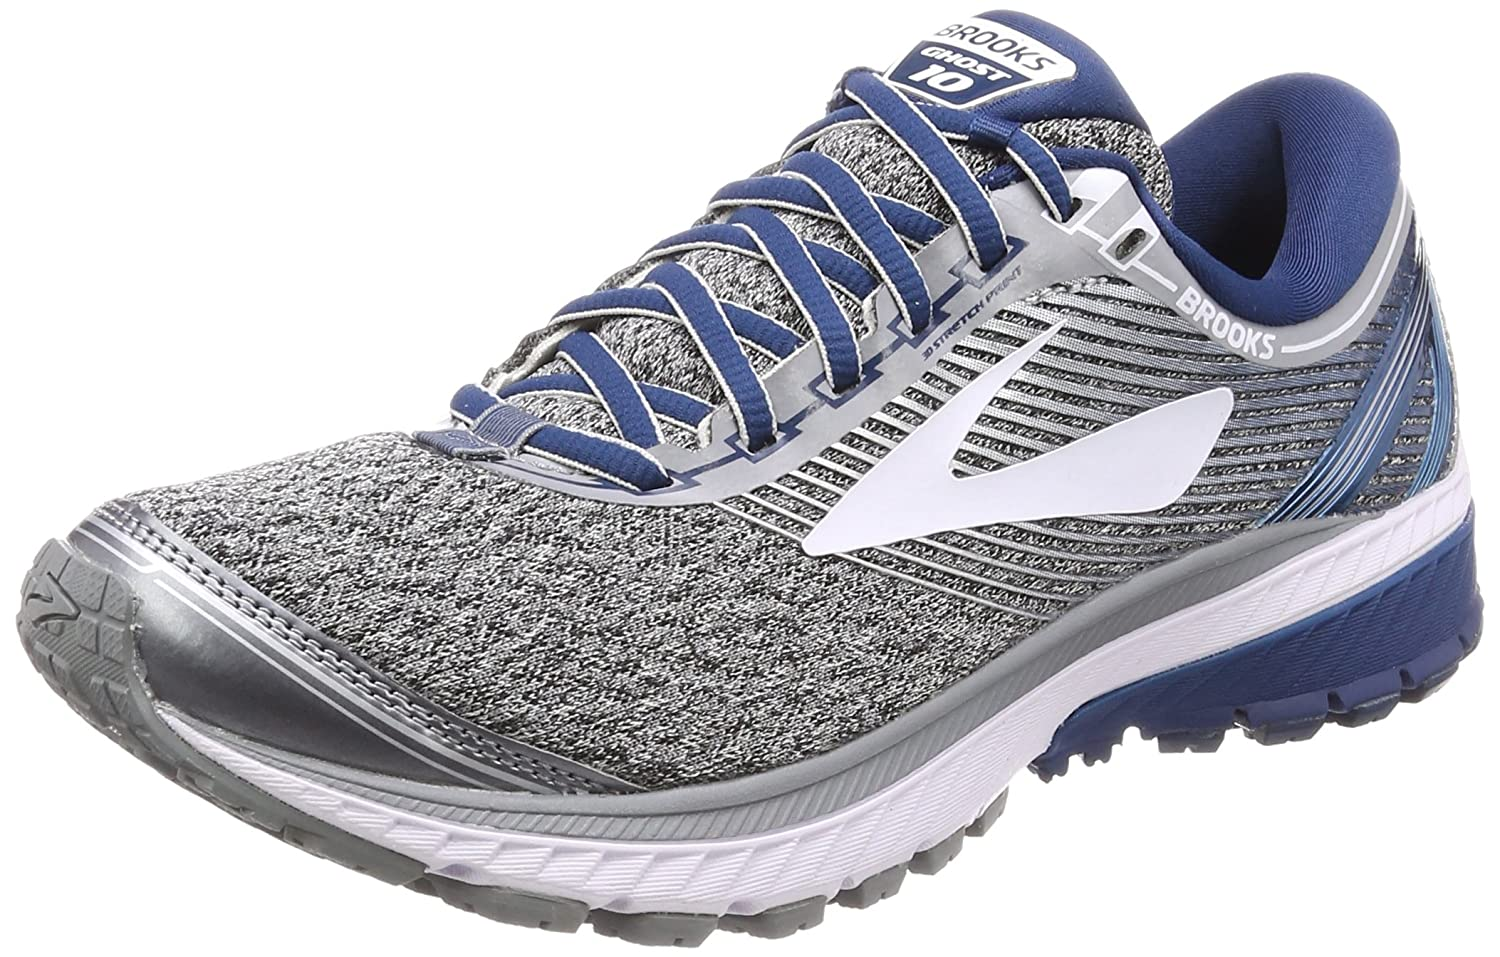 [ブルックス] BROOKS メンズ ランニングシューズ ゴースト10 B0711JDQP6 13 D - Medium|Silver/Blue/White Silver/Blue/White 13 D - Medium